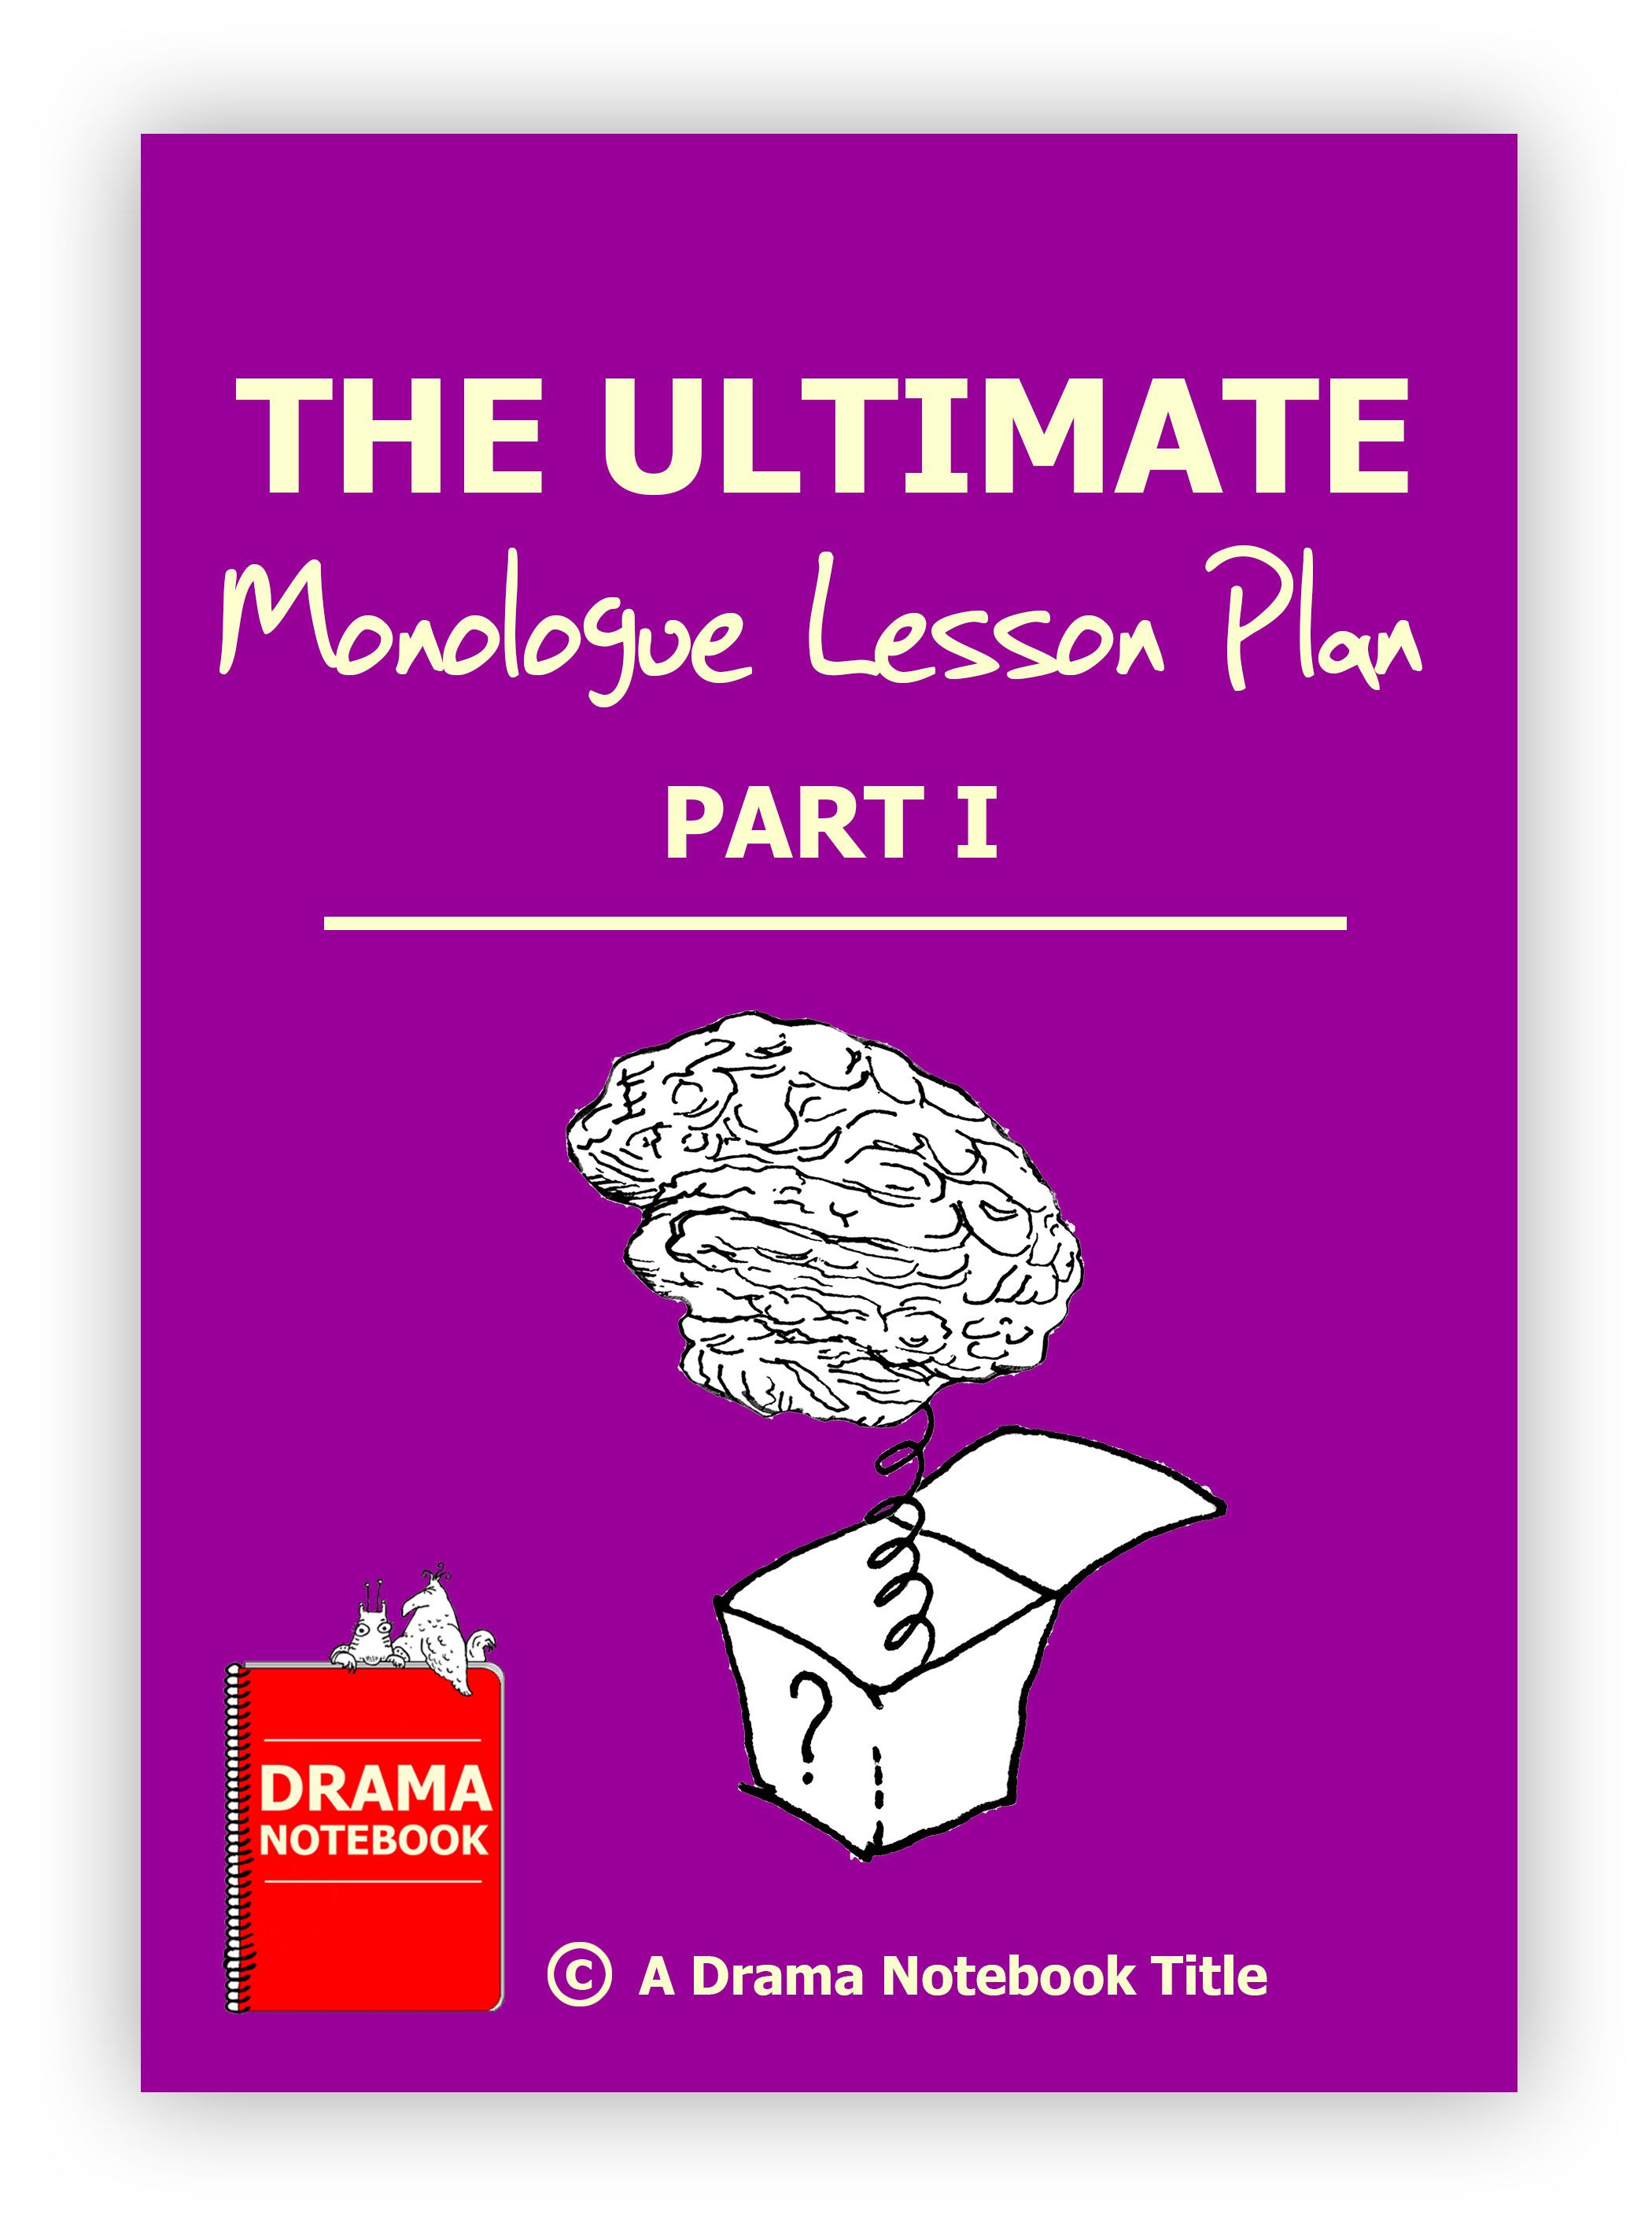 Monologue Lesson Plan for Highschool, Middleschool and